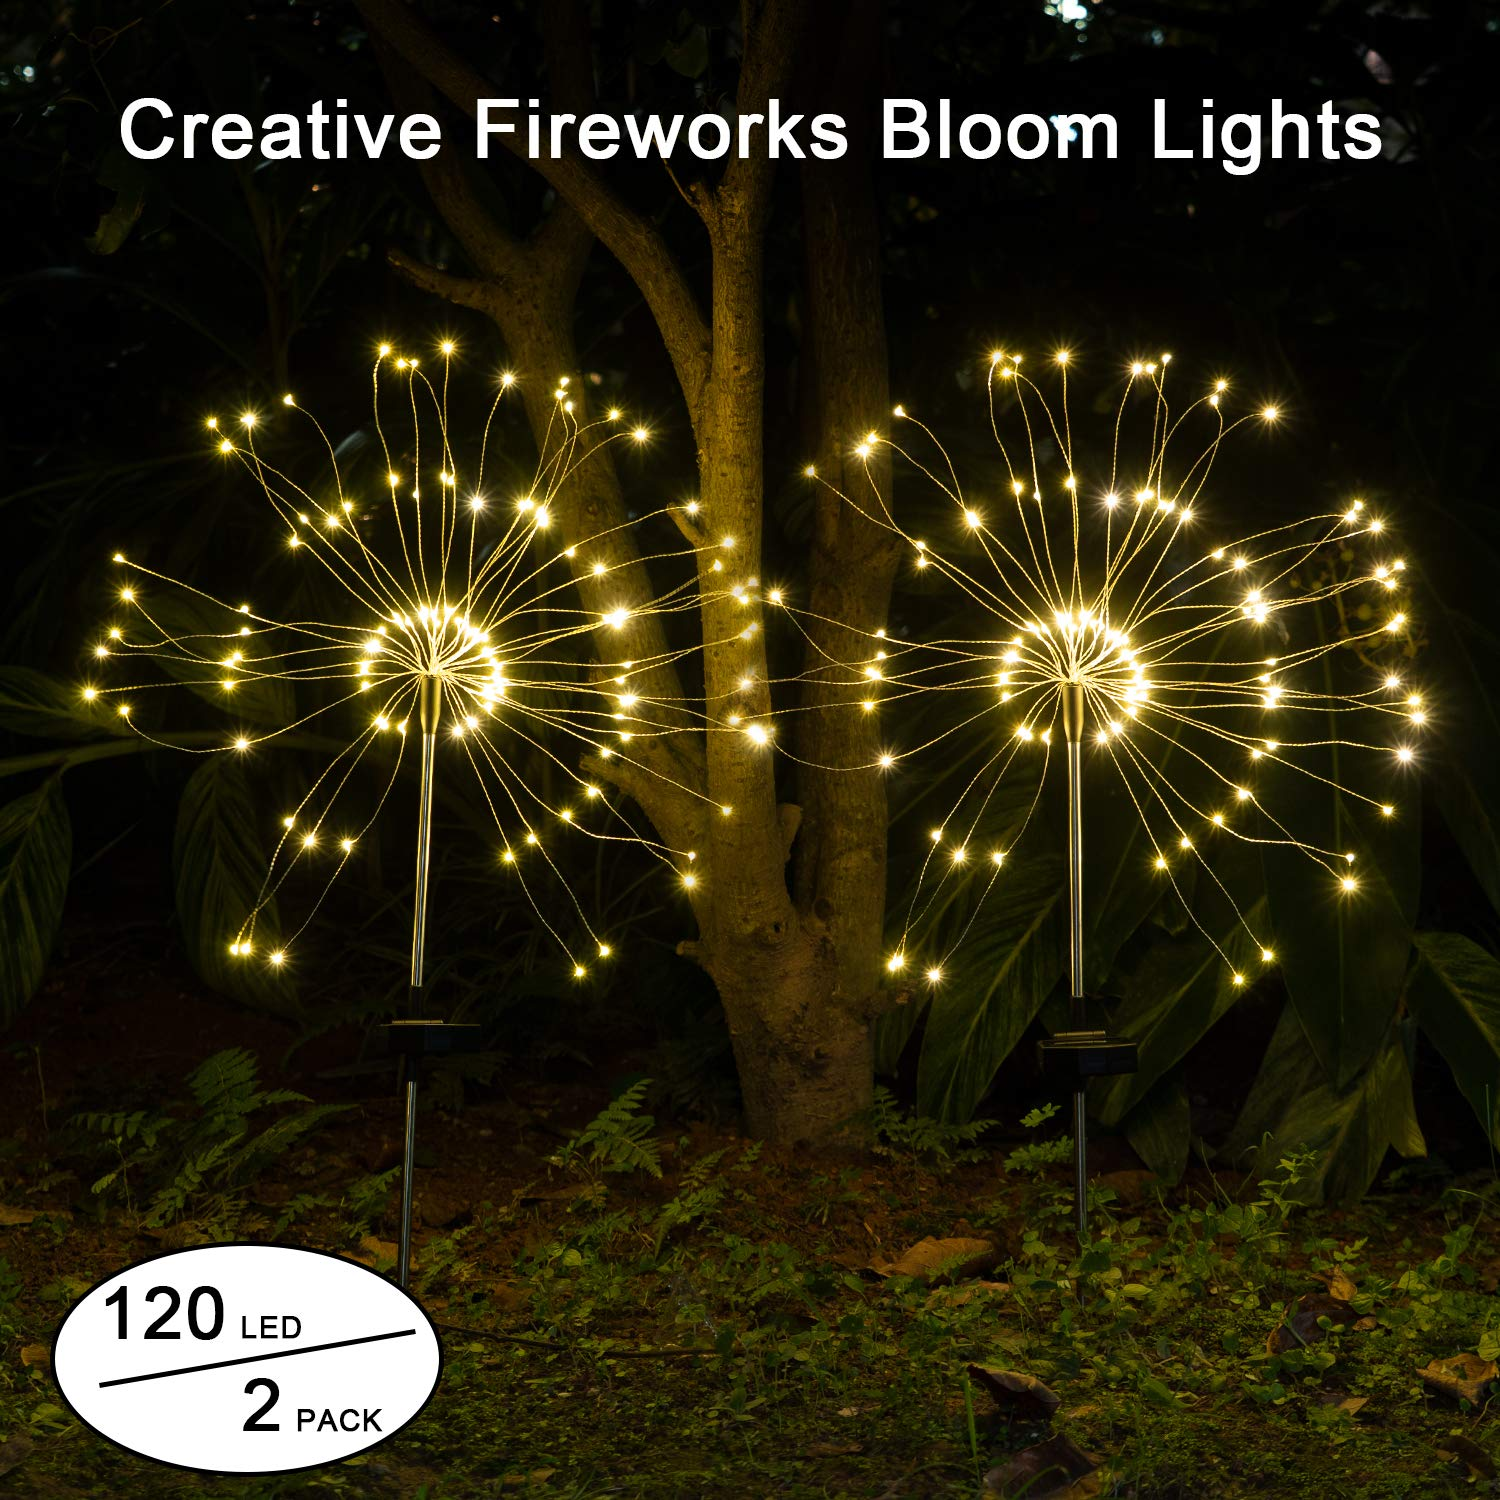 Solar Garden Lights Decorative Outdoor IPX7 Waterproof Solar 120LED Powered 40Copper Wires String Landscape Light DIY Flowers Fireworks Trees for Walkway Patio Lawn Backyard,Christmas Party Decor